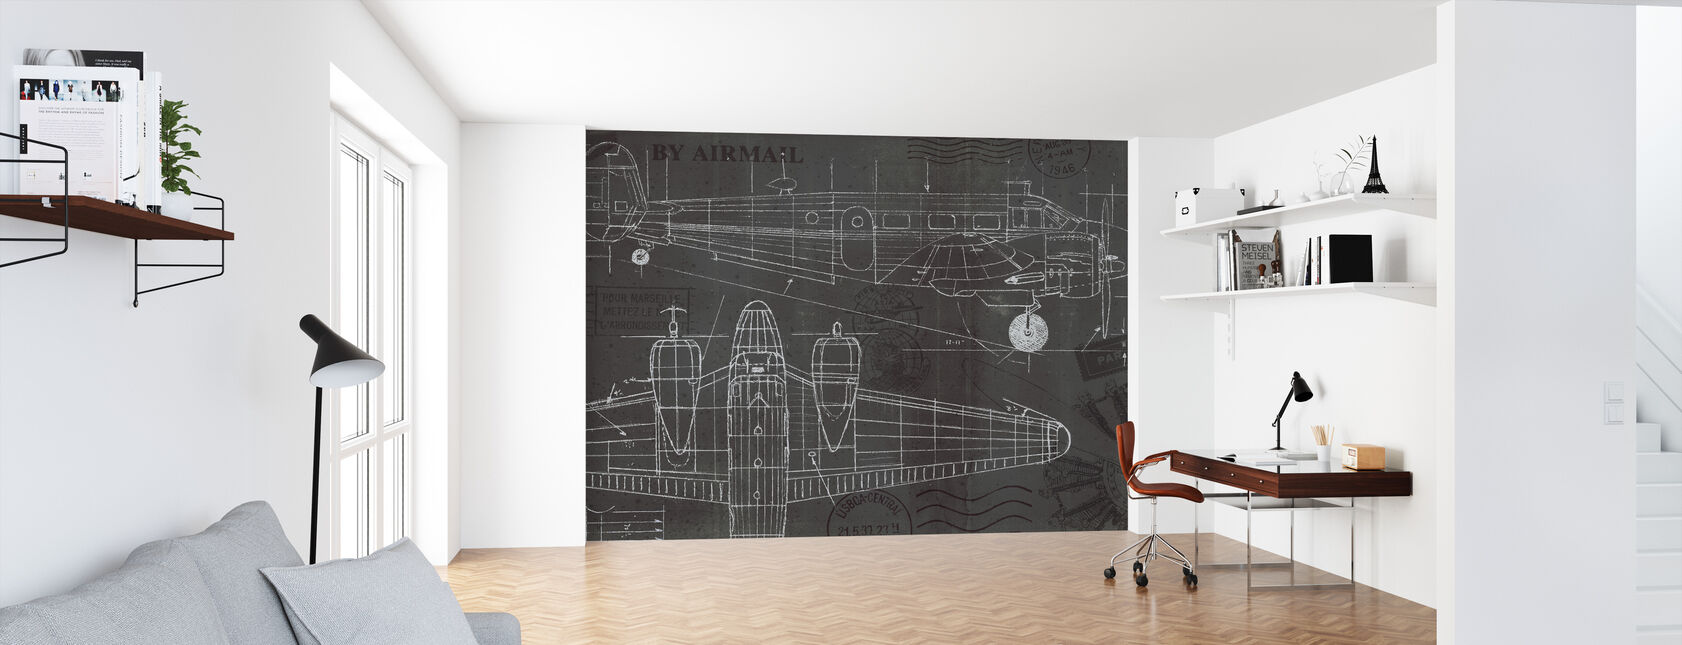 Plane Blueprint - Wallpaper - Office